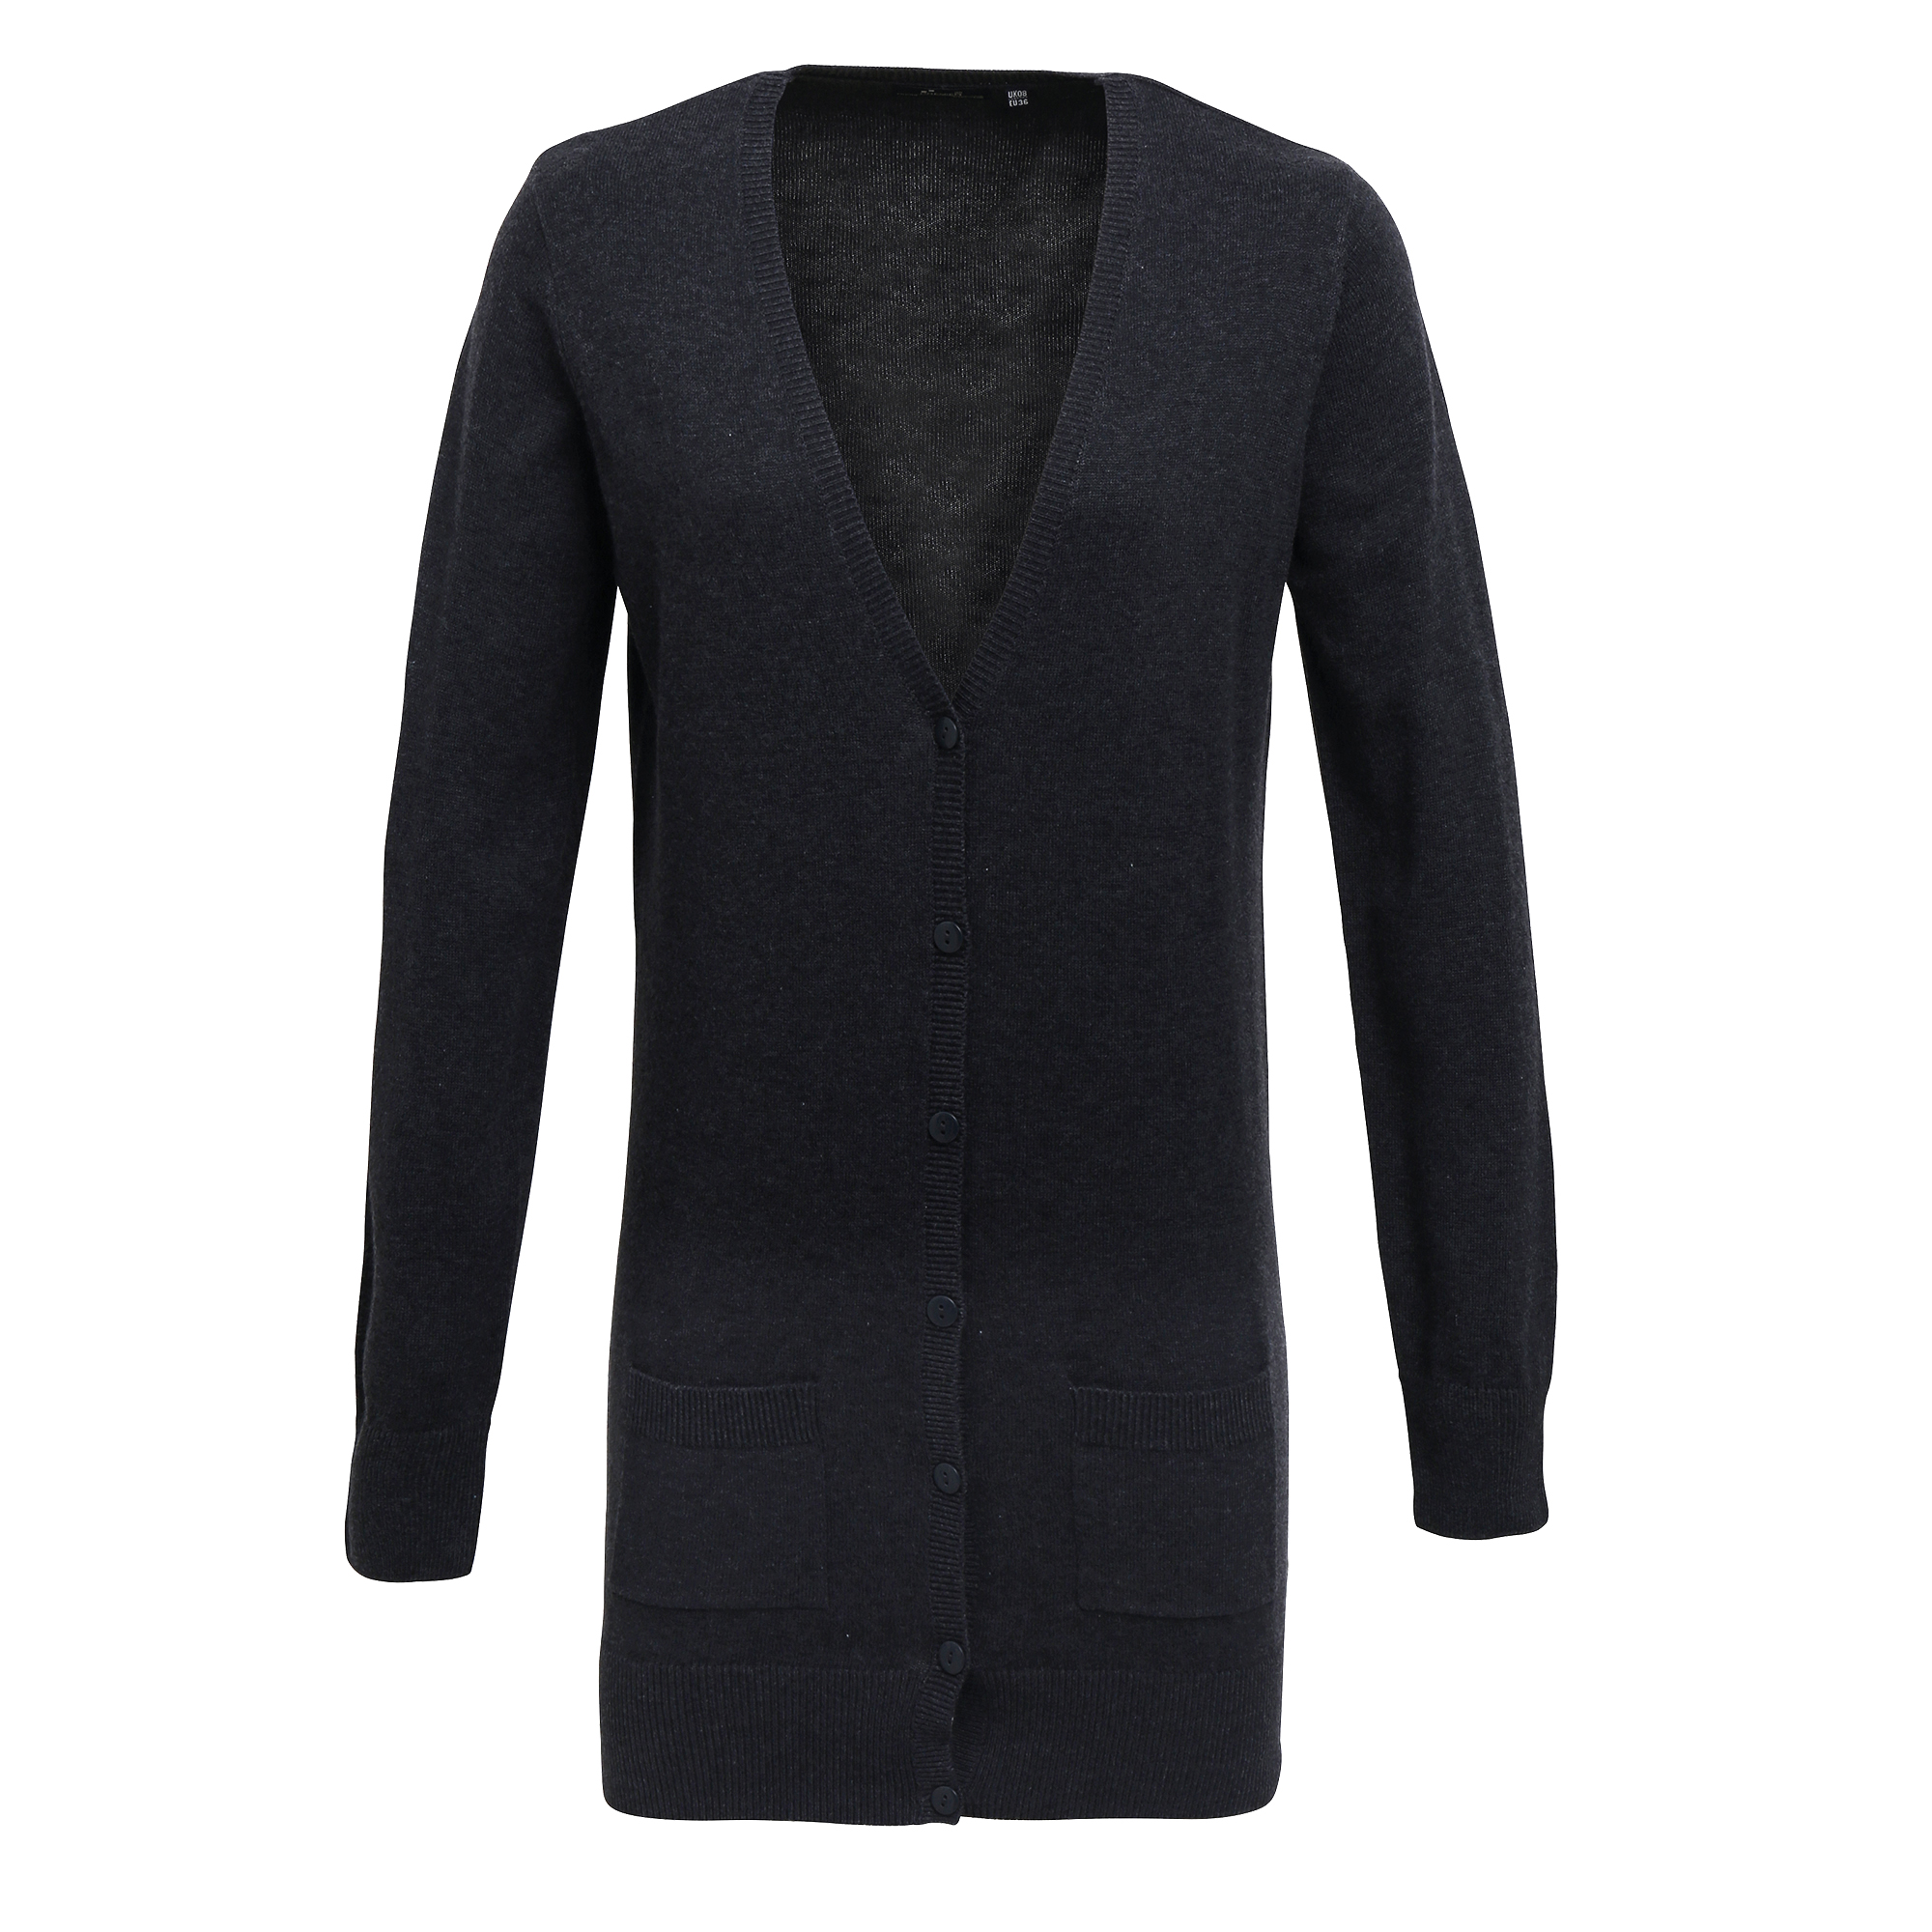 Premier Womens/Ladies Longline V Neck Knitted Cardigan (10) (Charcoal)